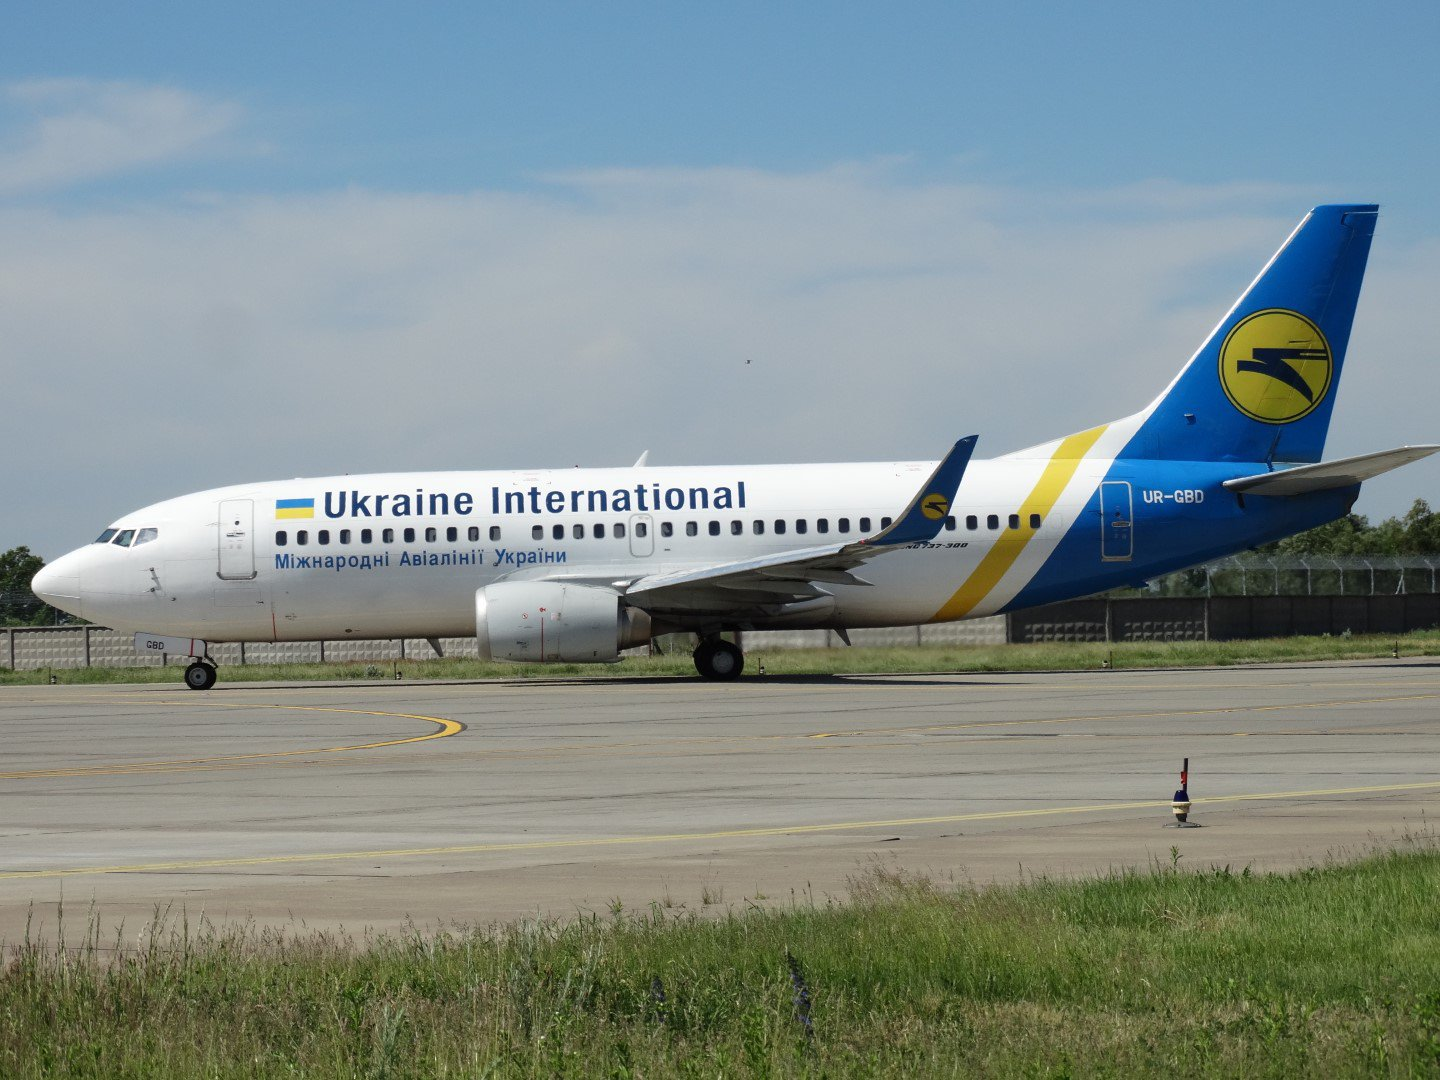 Boeing 737-300 UR-GBD Ukraine International Airlines в аэропорту Борисполь